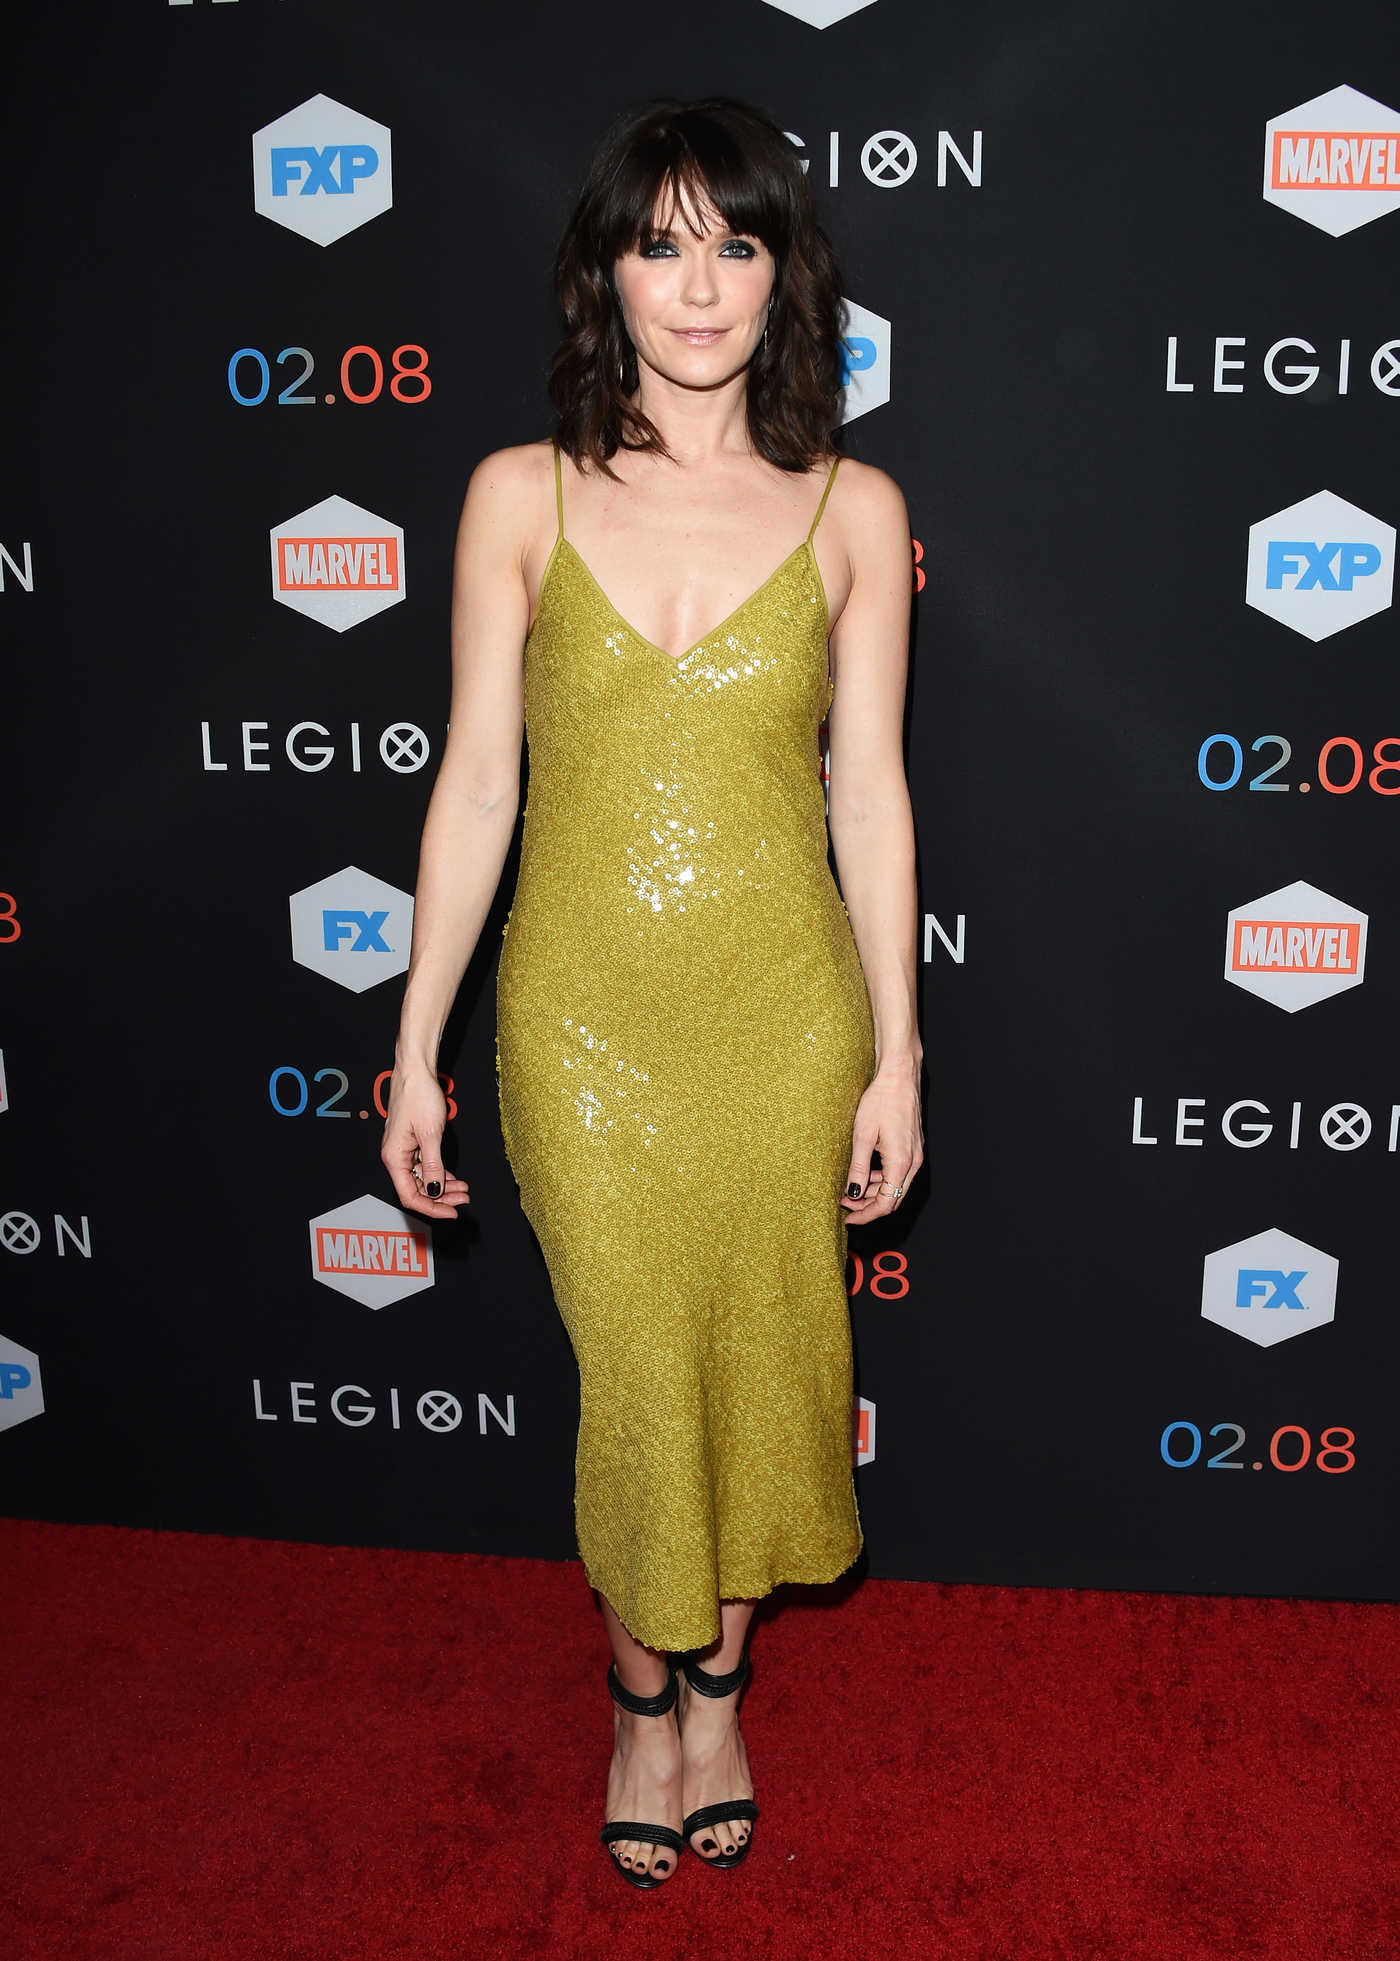 Katie Aselton at the Legion TV Series Premiere in Los Angeles 01/26/2017